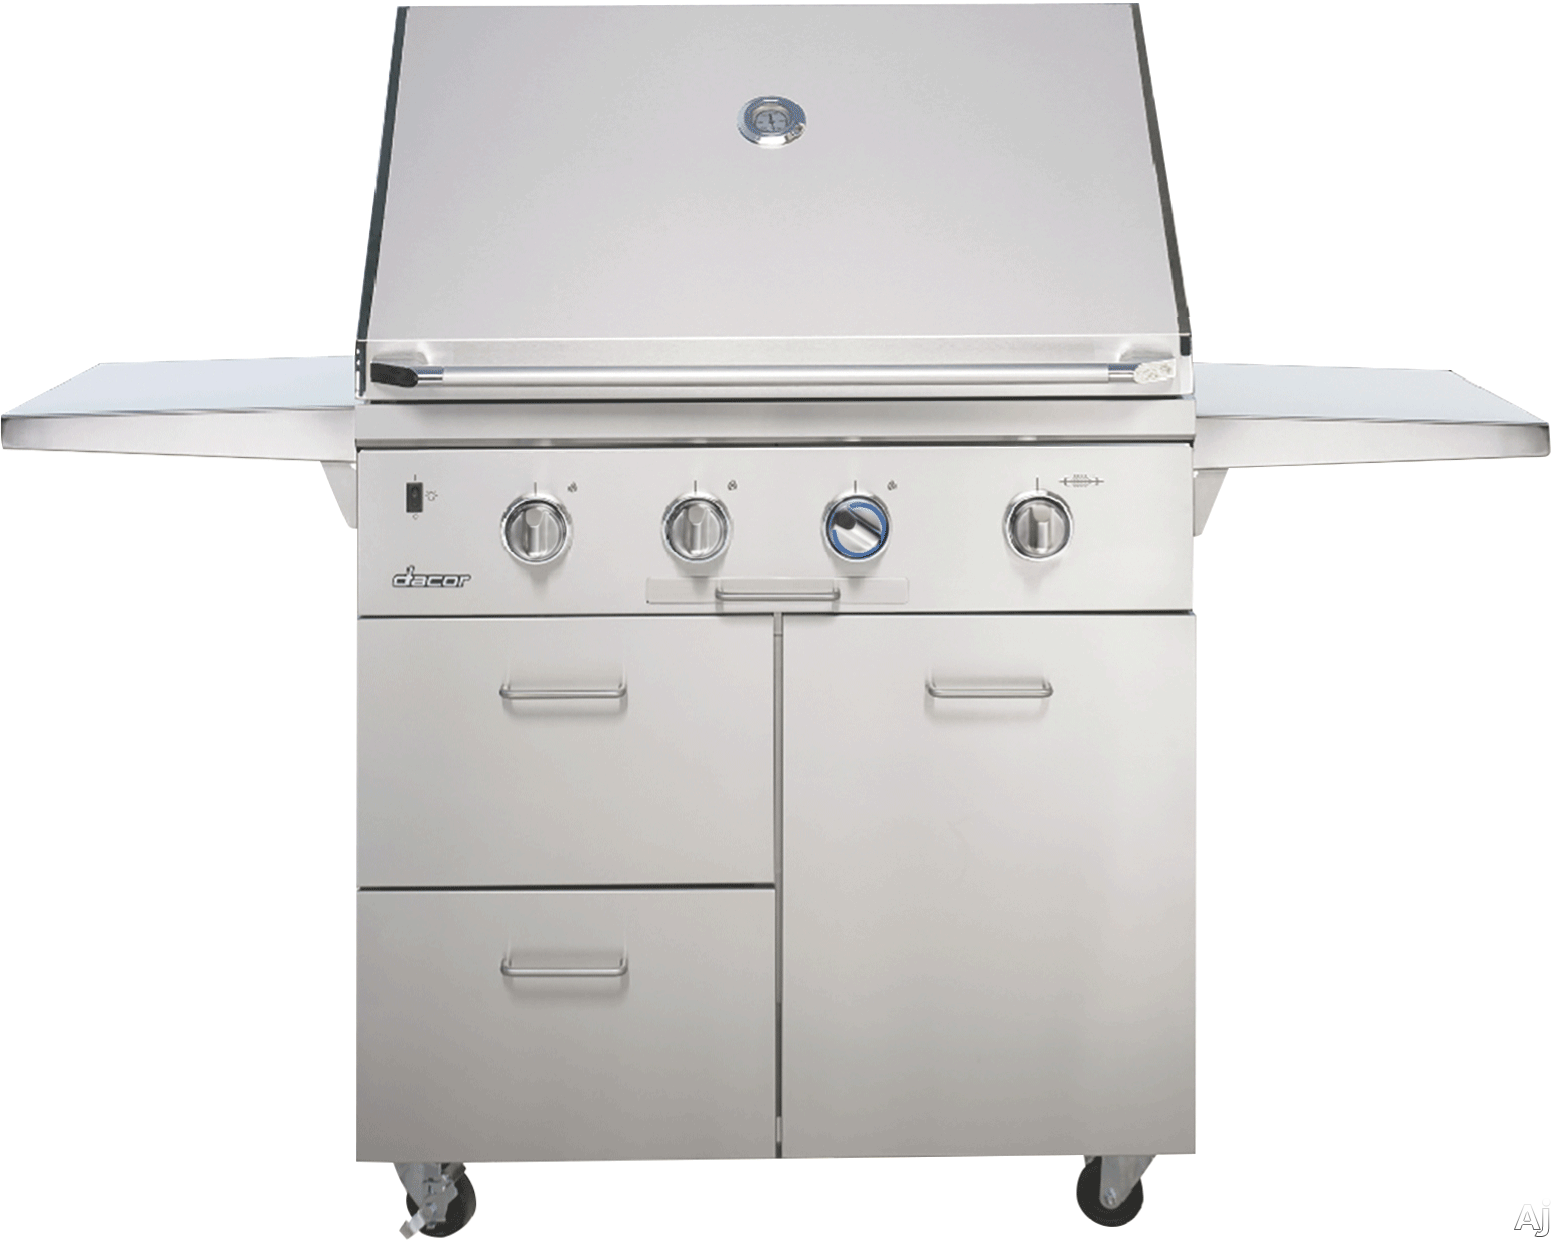 Dacor Heritage OBC36 36 Inch Outdoor Grill Cart with Heavy-Duty Stainless Steel Construction (Grill Sold Separately)